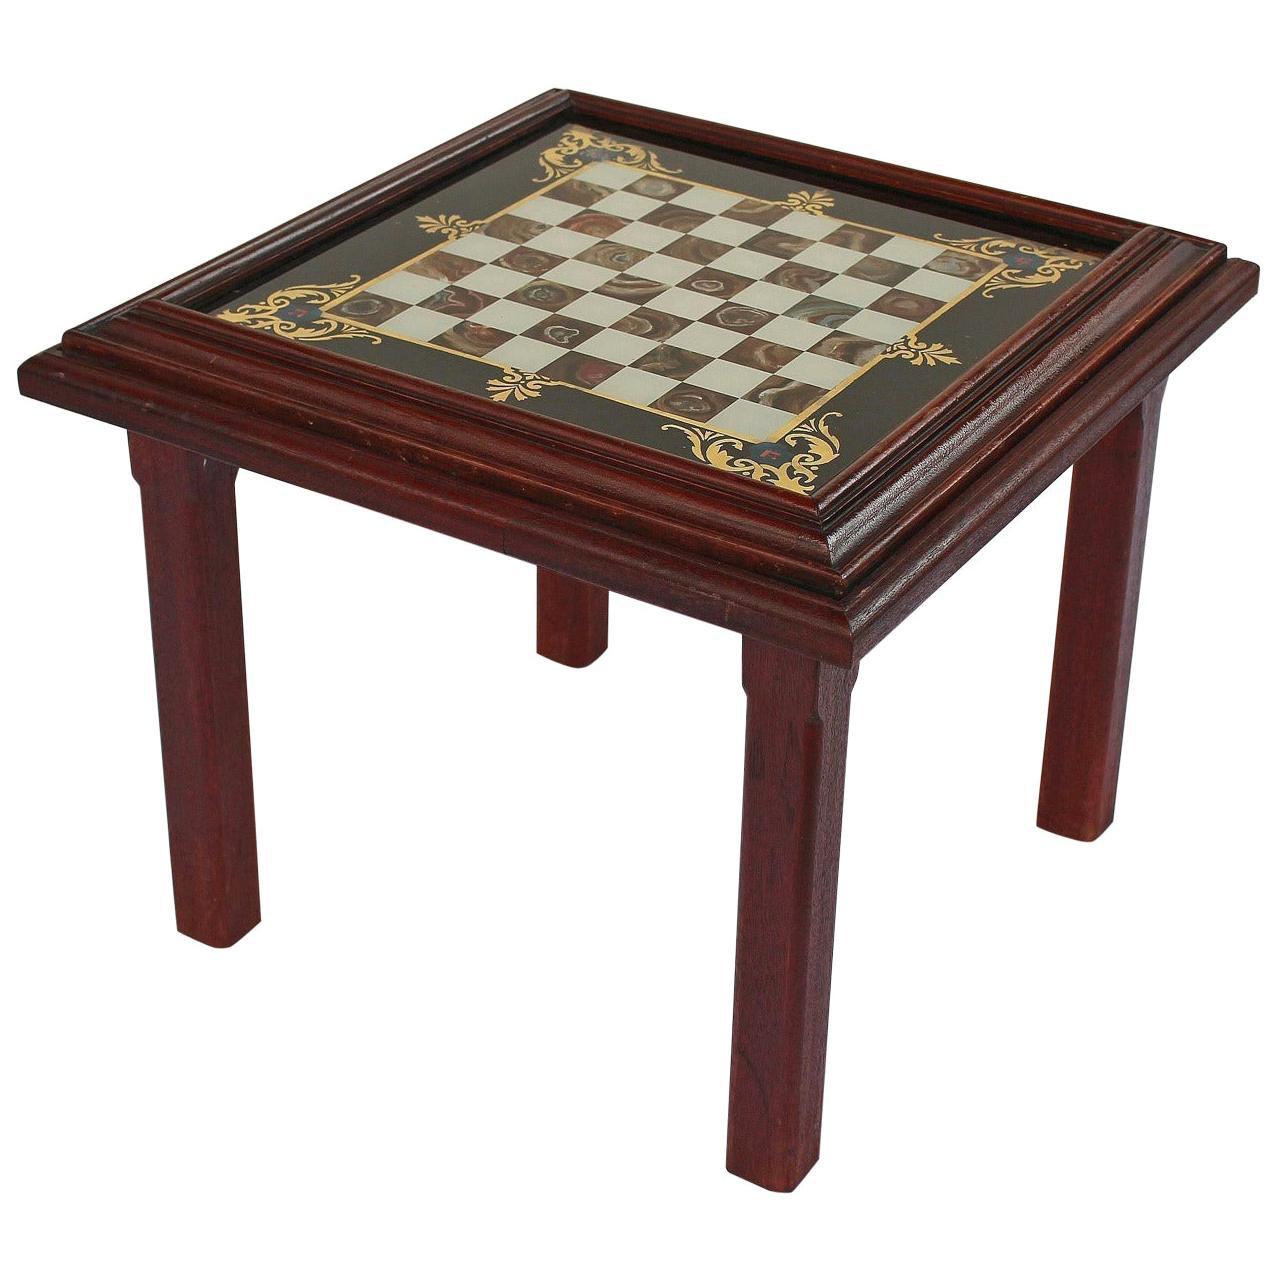 English Low Cocktail or Coffee Table with Chess Board Top